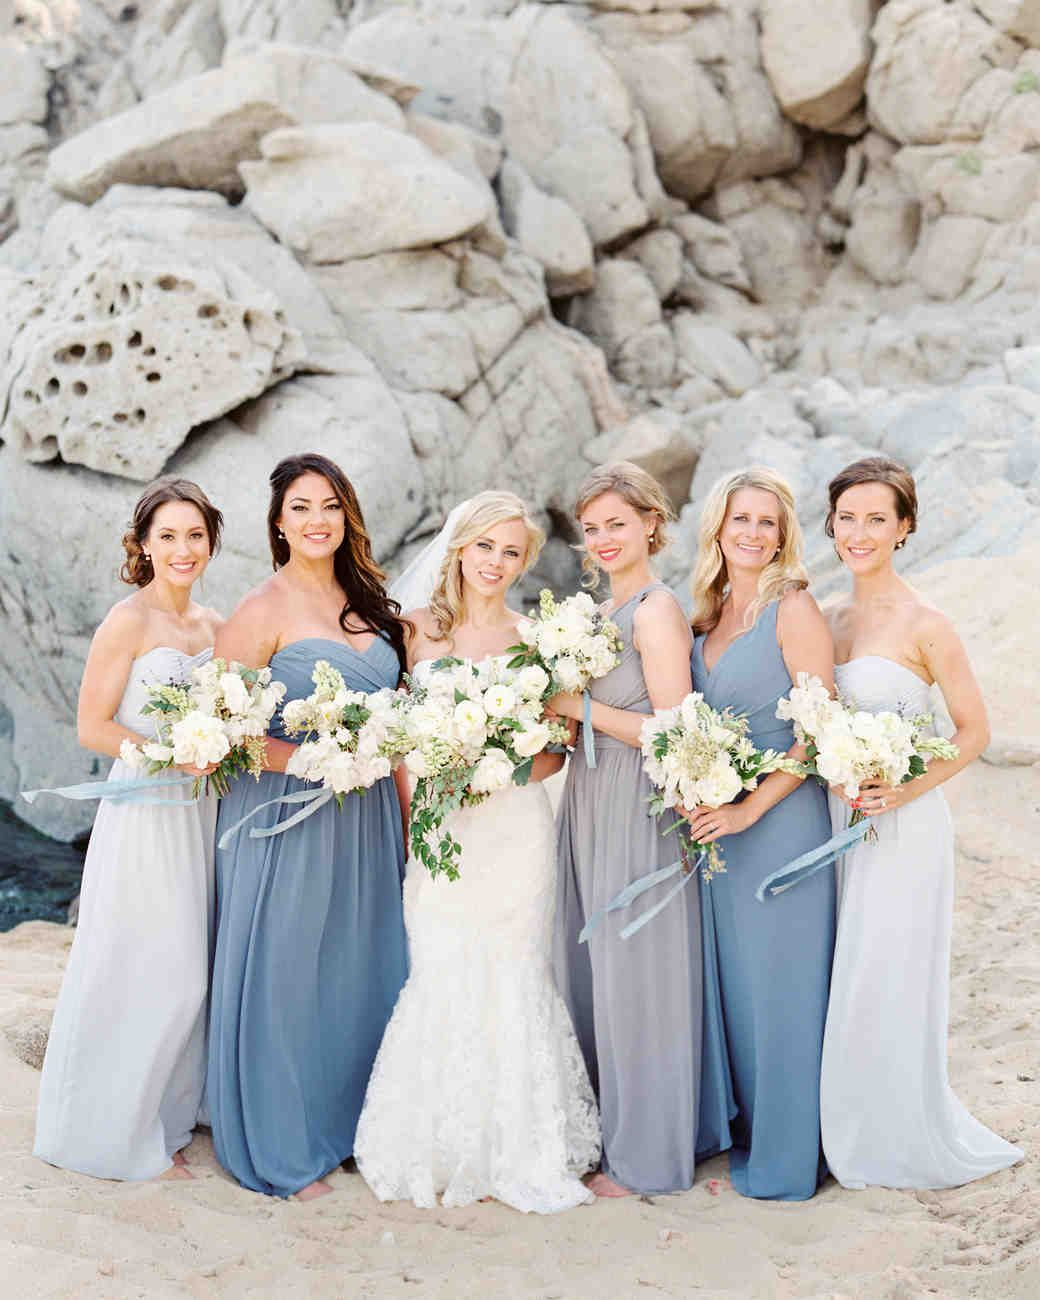 Bridesmaid dress for beach wedding  Pin by Alyssa Longobucco on Knot Wedding Party  Pinterest  Cabo